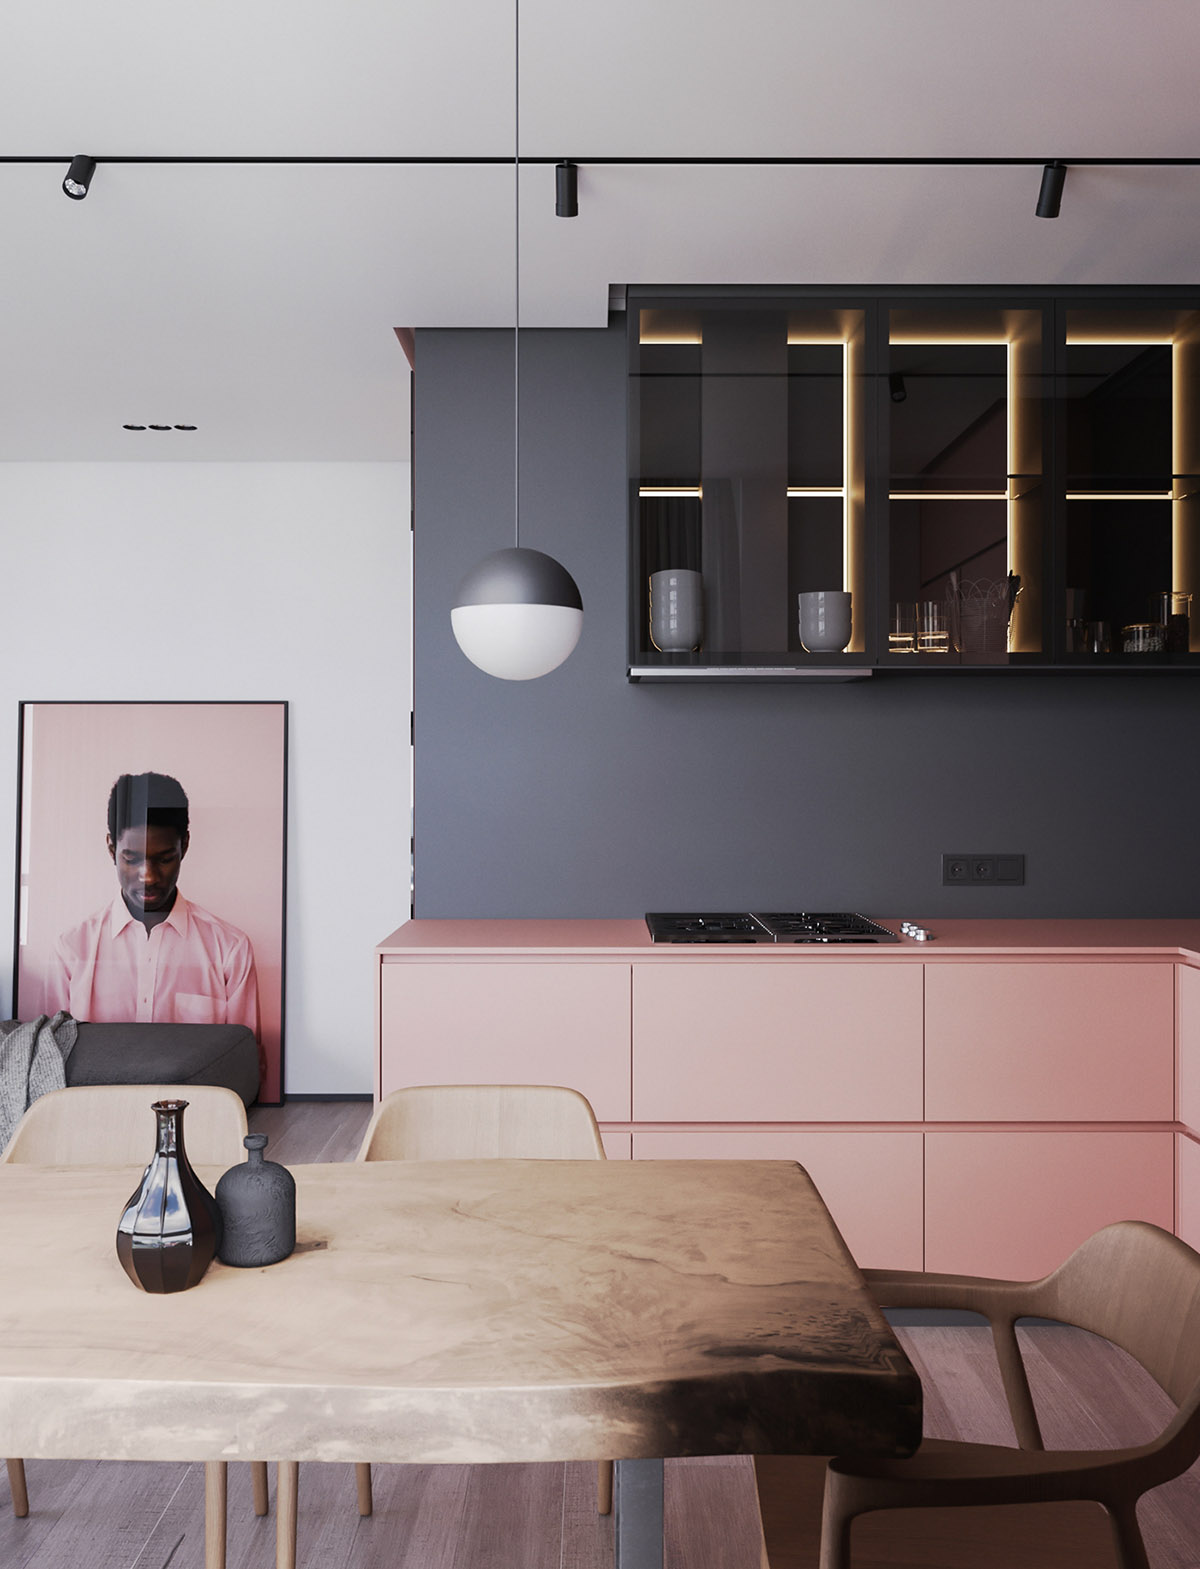 A Striking Example Of Interior Design Using Pink And Grey images 5